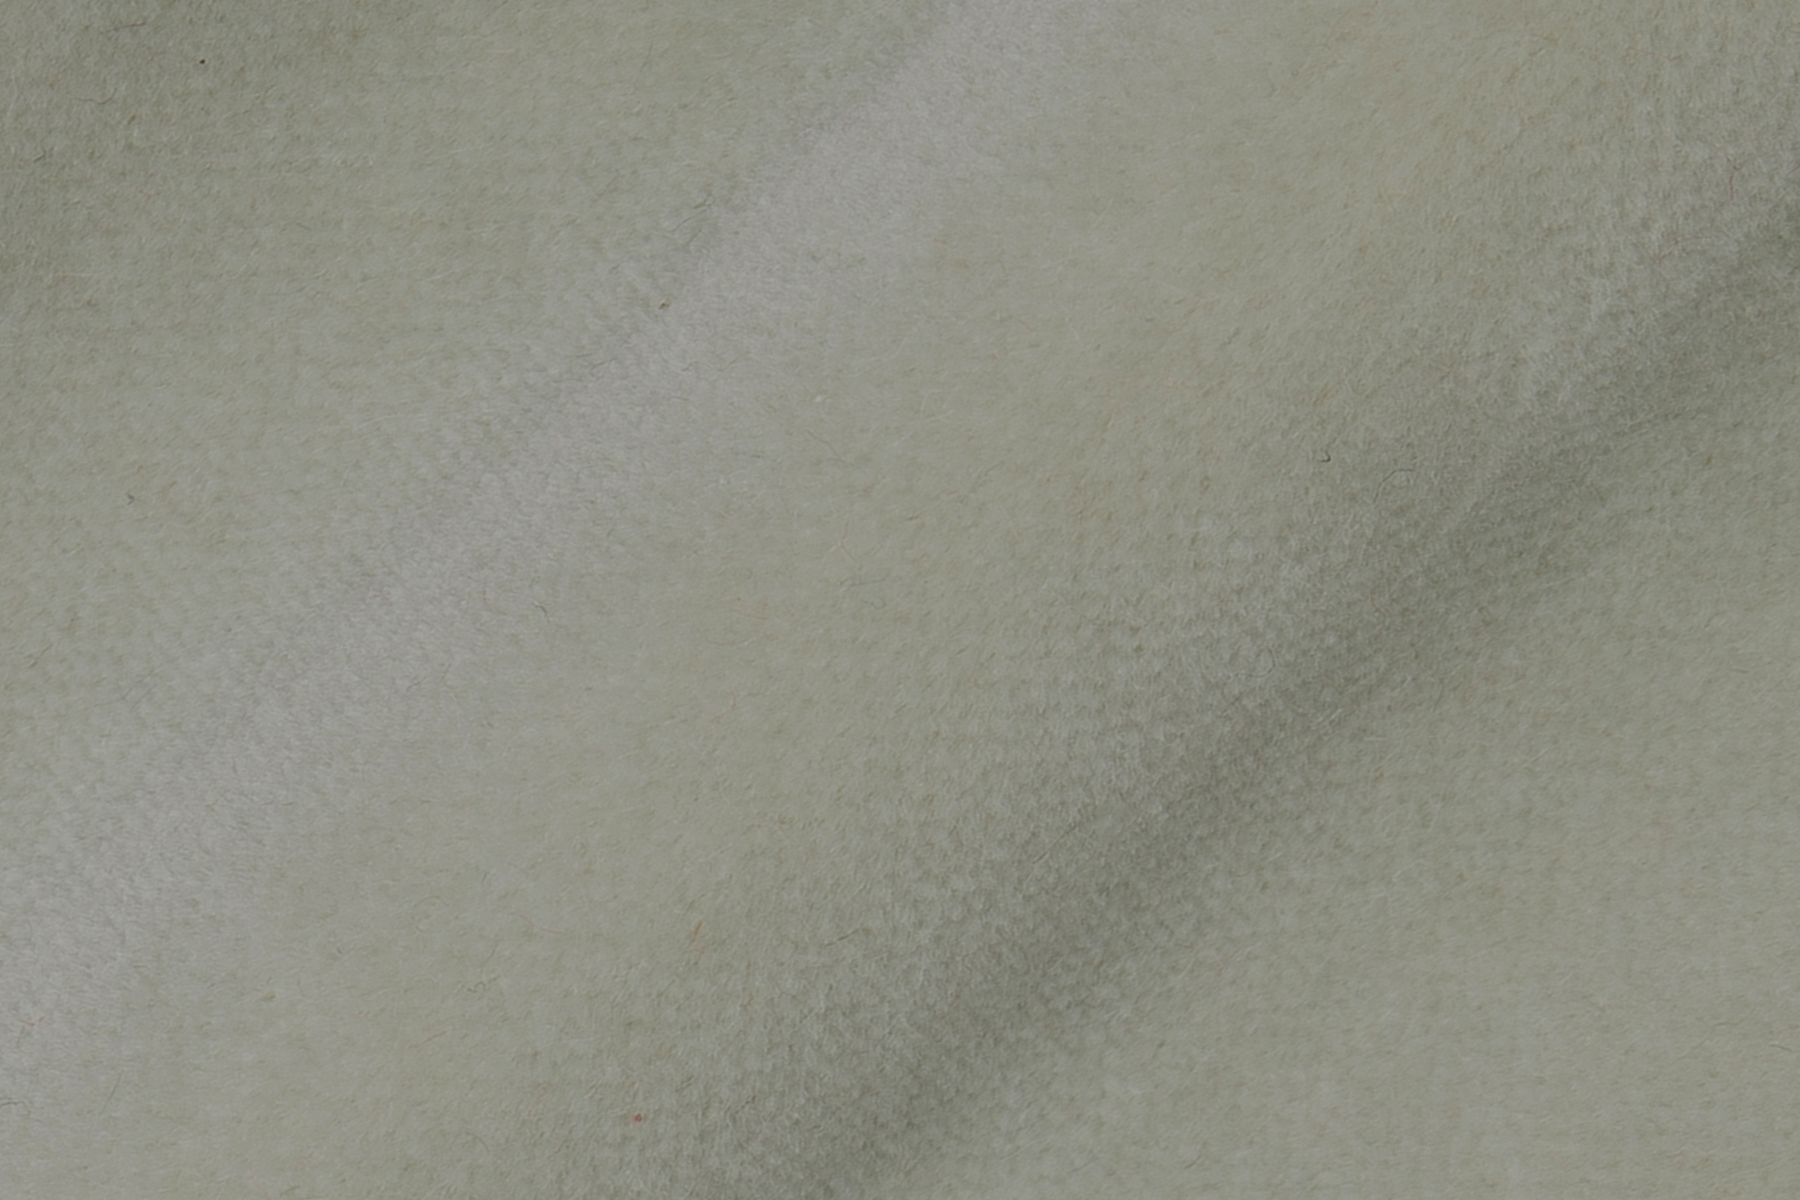 LUX VELVET 1200 SEAFON Fabric by KOKET